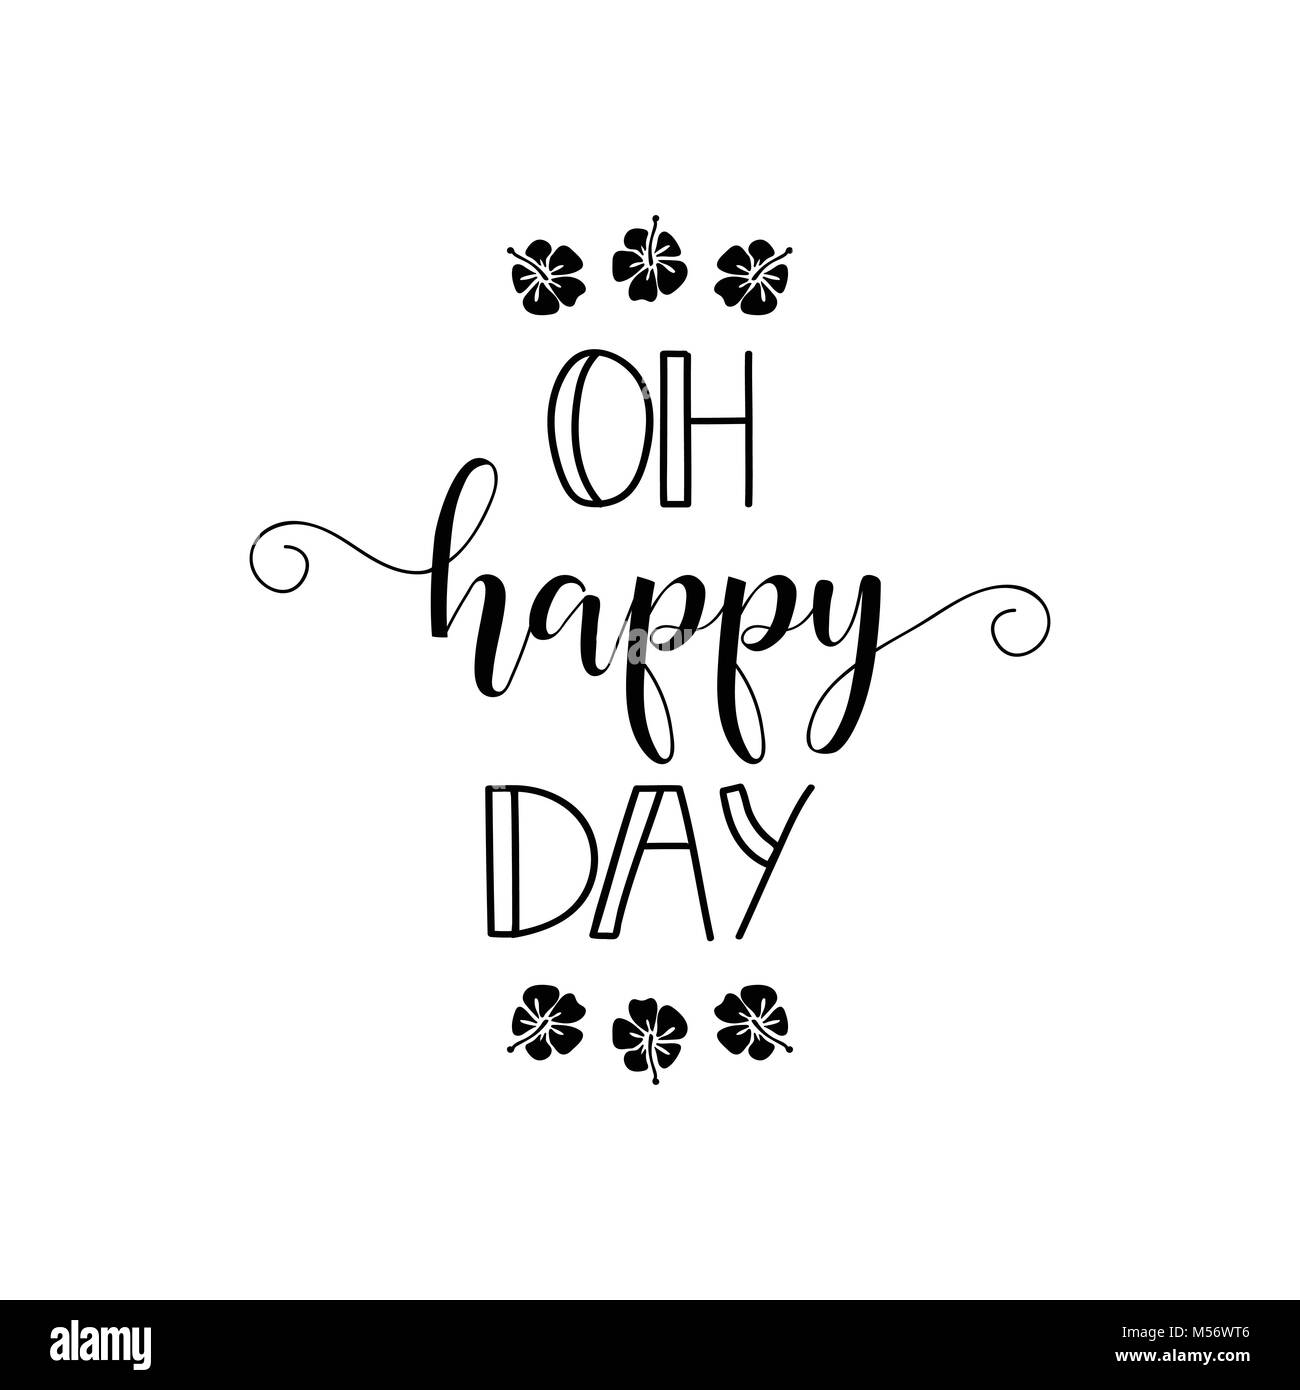 Oh happy day. lettering. Design for banner poster, card, invitation flyer brochure t-shirt Vector Stock Vector